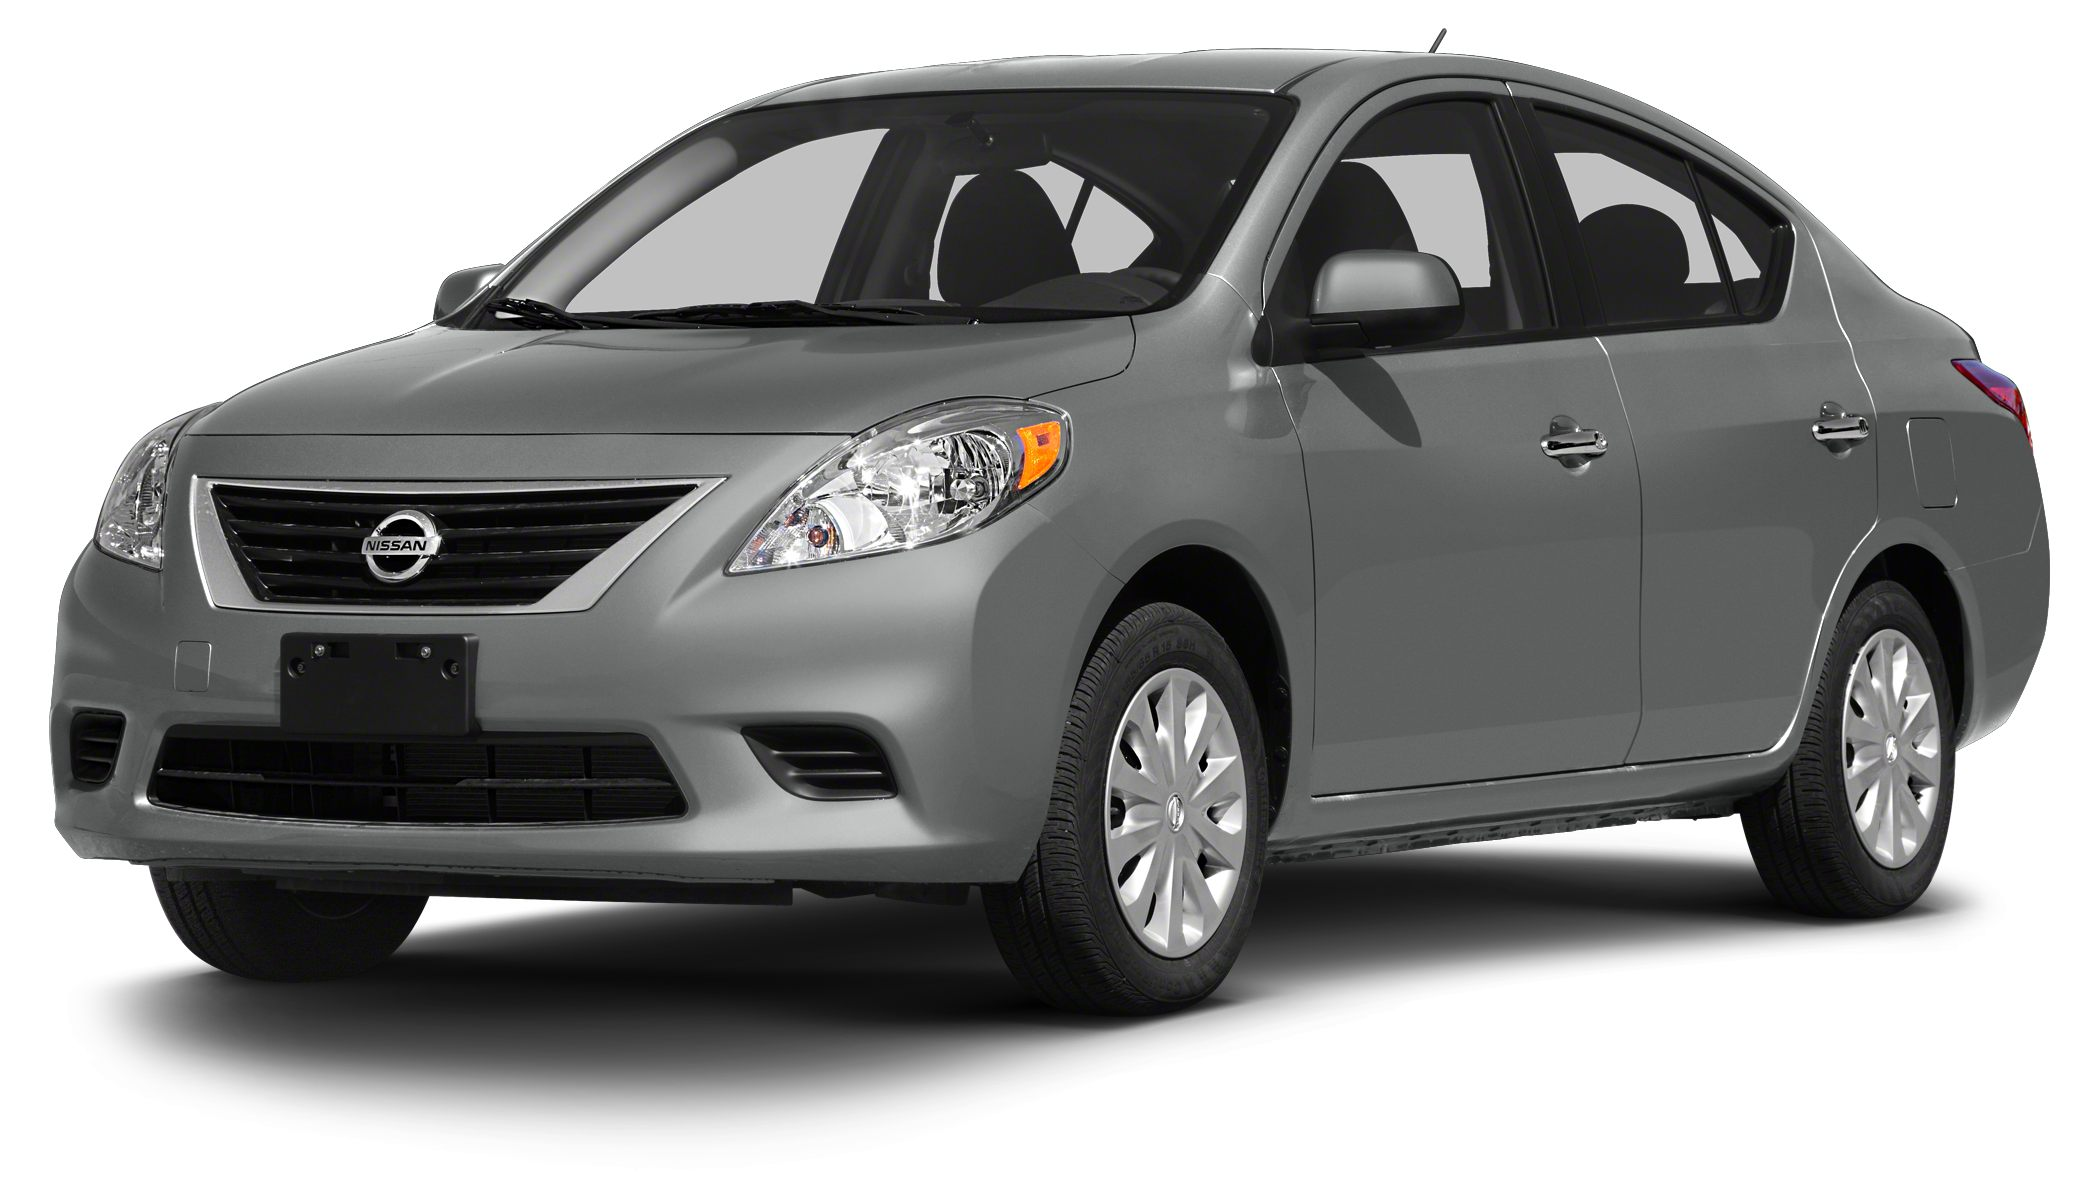 2013 Nissan Versa 16 S A ONE OWNER LOCAL TRADE-IN WITH LOW MILES Buy with confidence - local tra